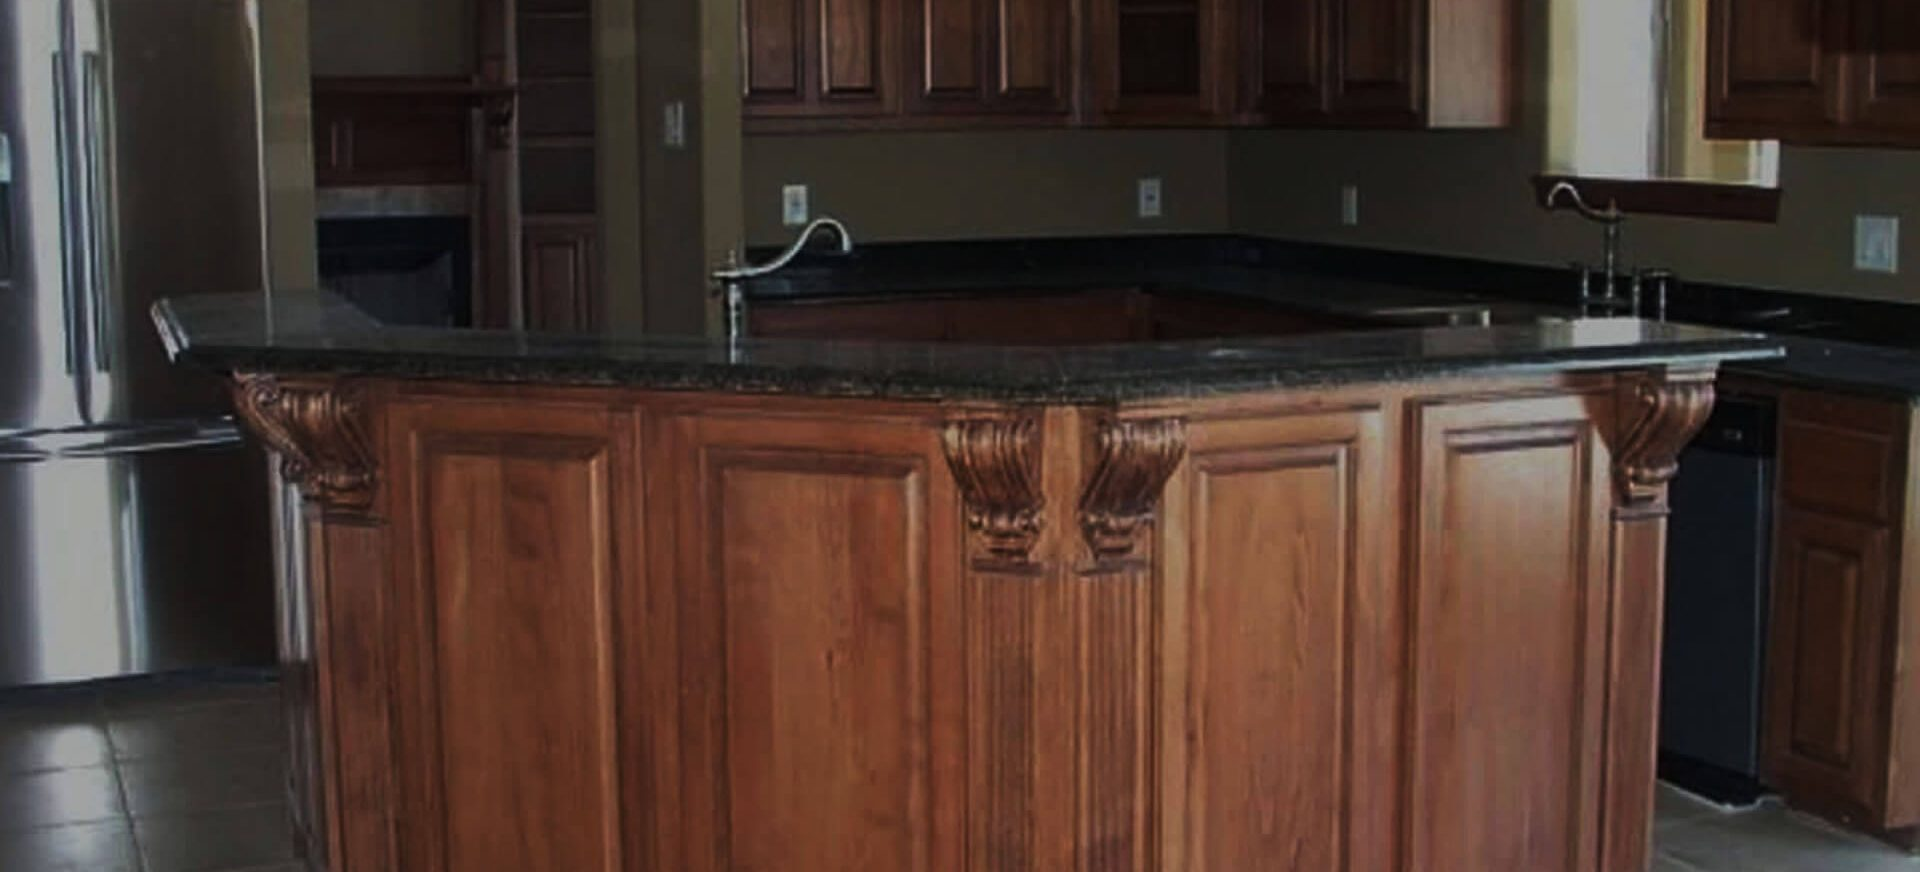 Wood FX Cabinets | Baton Rouge Cabinetry